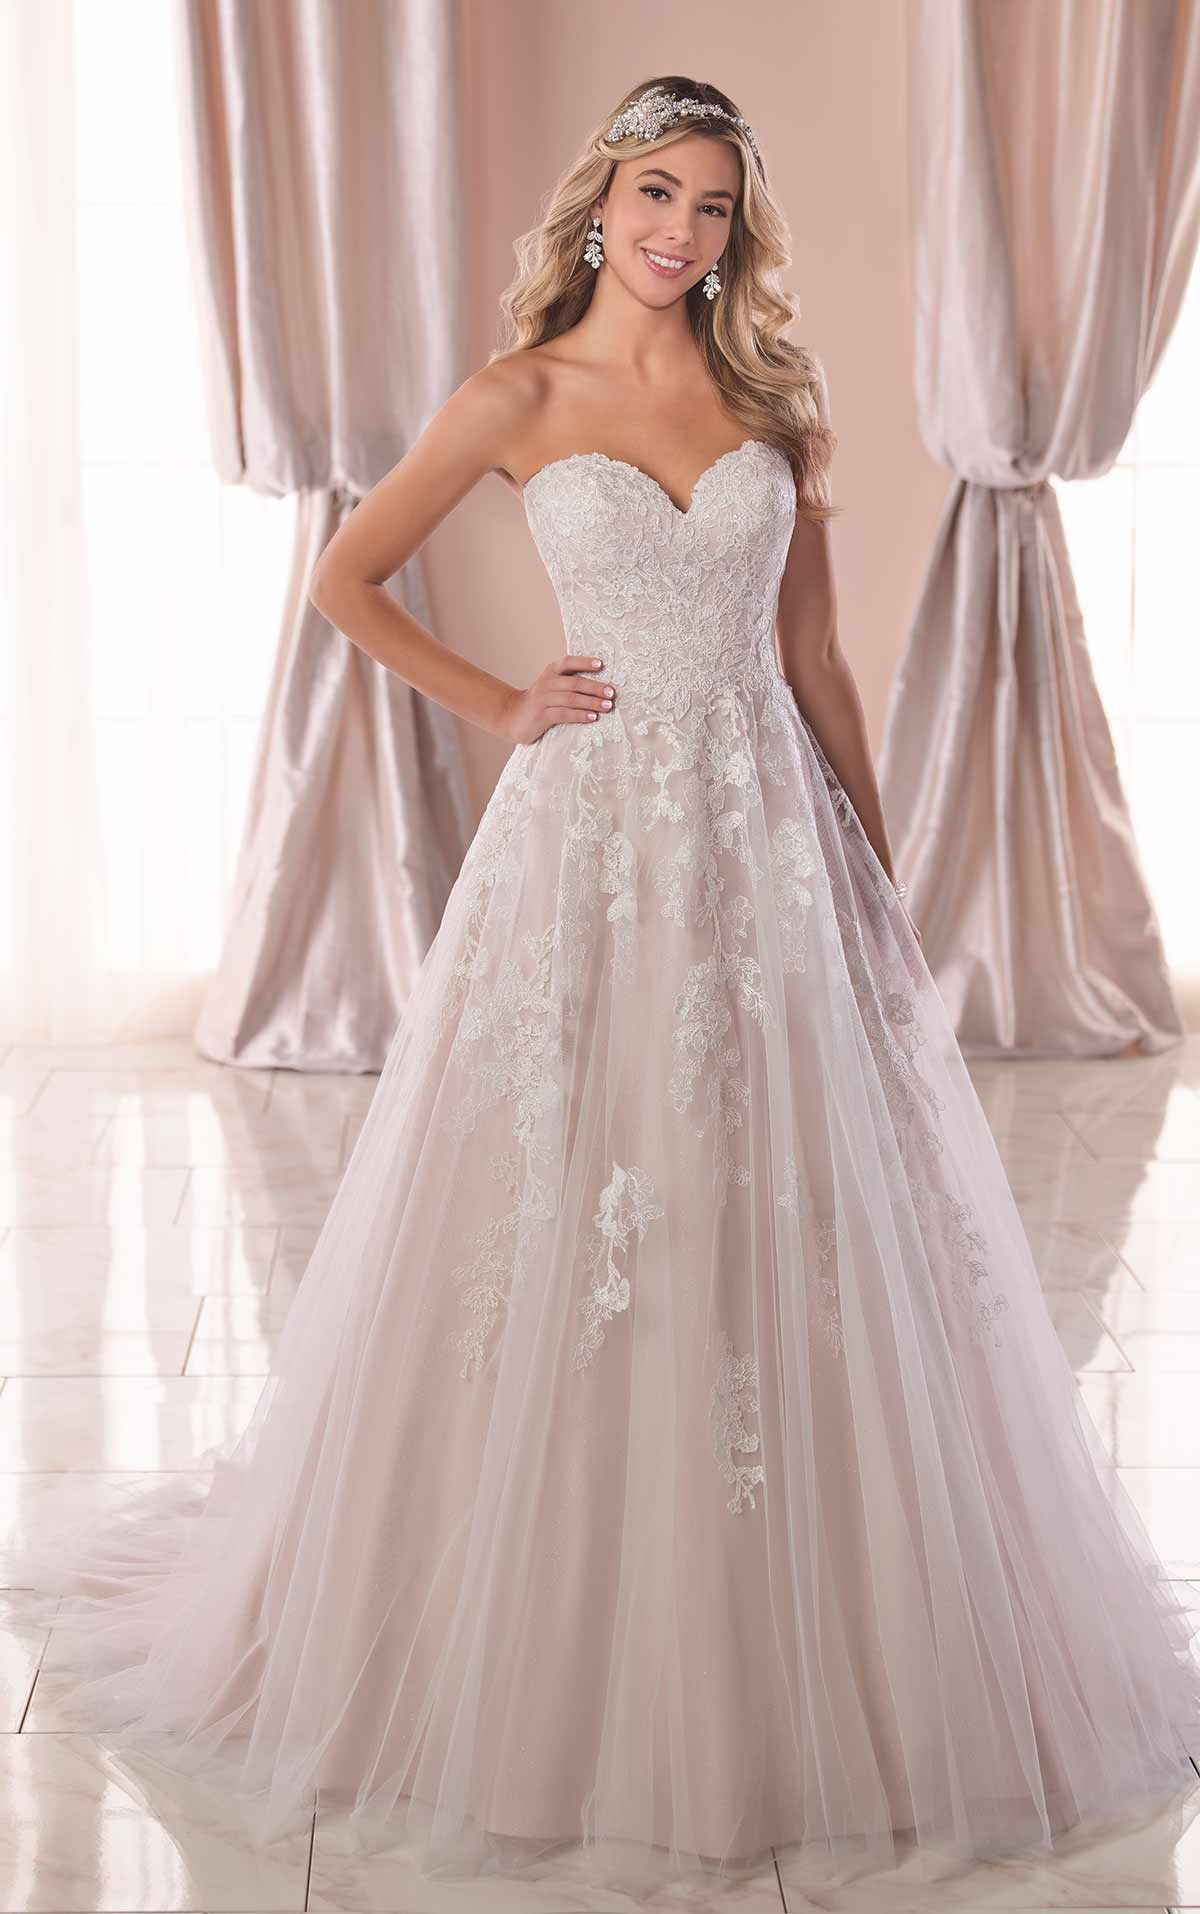 be09adc069 A-Line Wedding Dress with Sparkle Tulle - Stella York Wedding Dresses